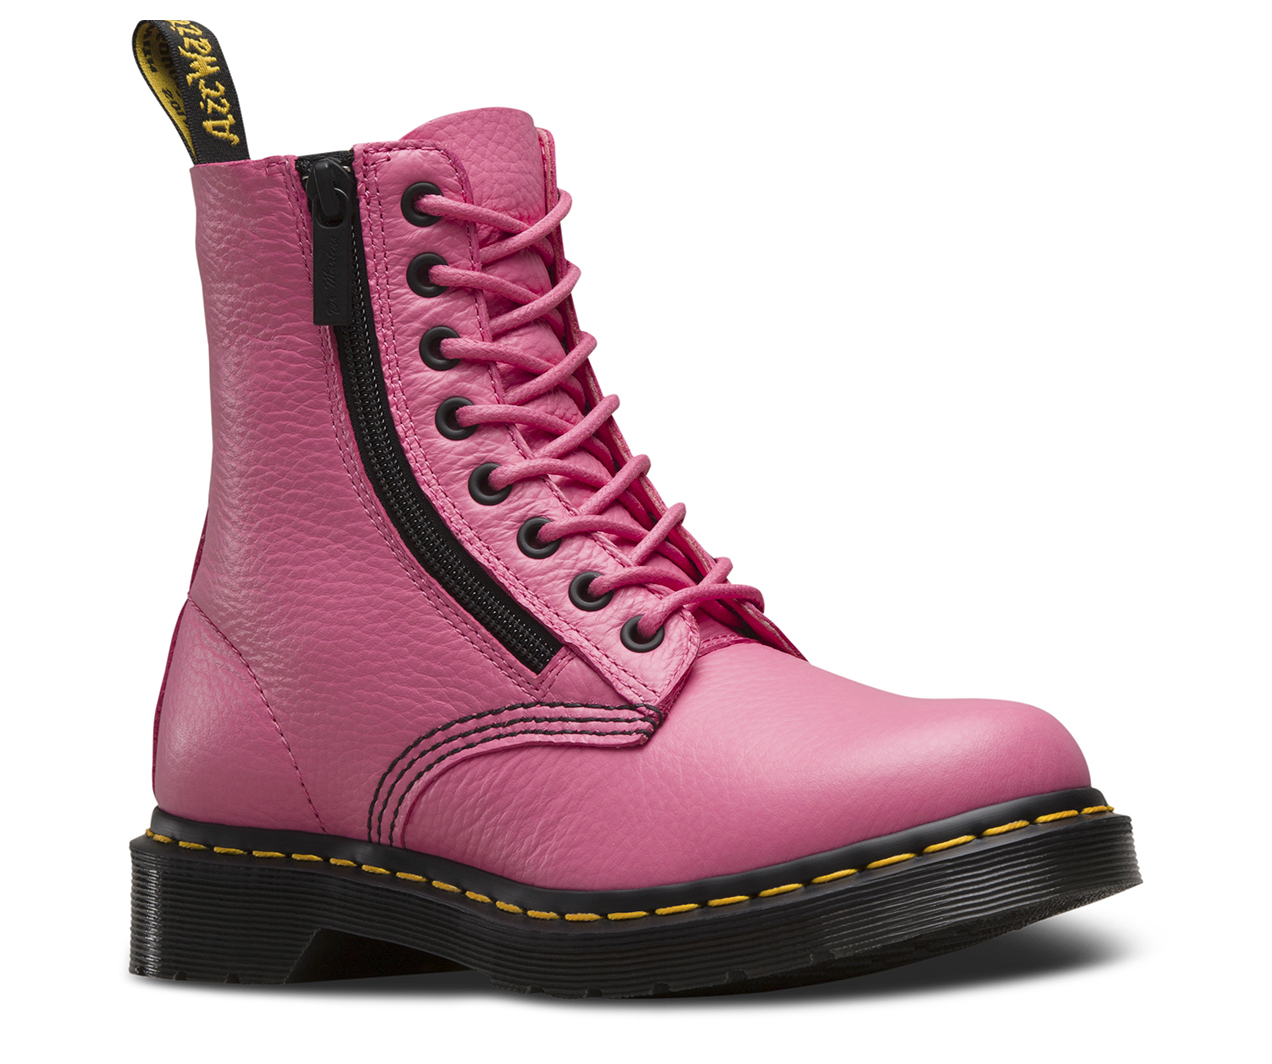 pascal w zip women 39 s boots shoes official dr martens store uk. Black Bedroom Furniture Sets. Home Design Ideas